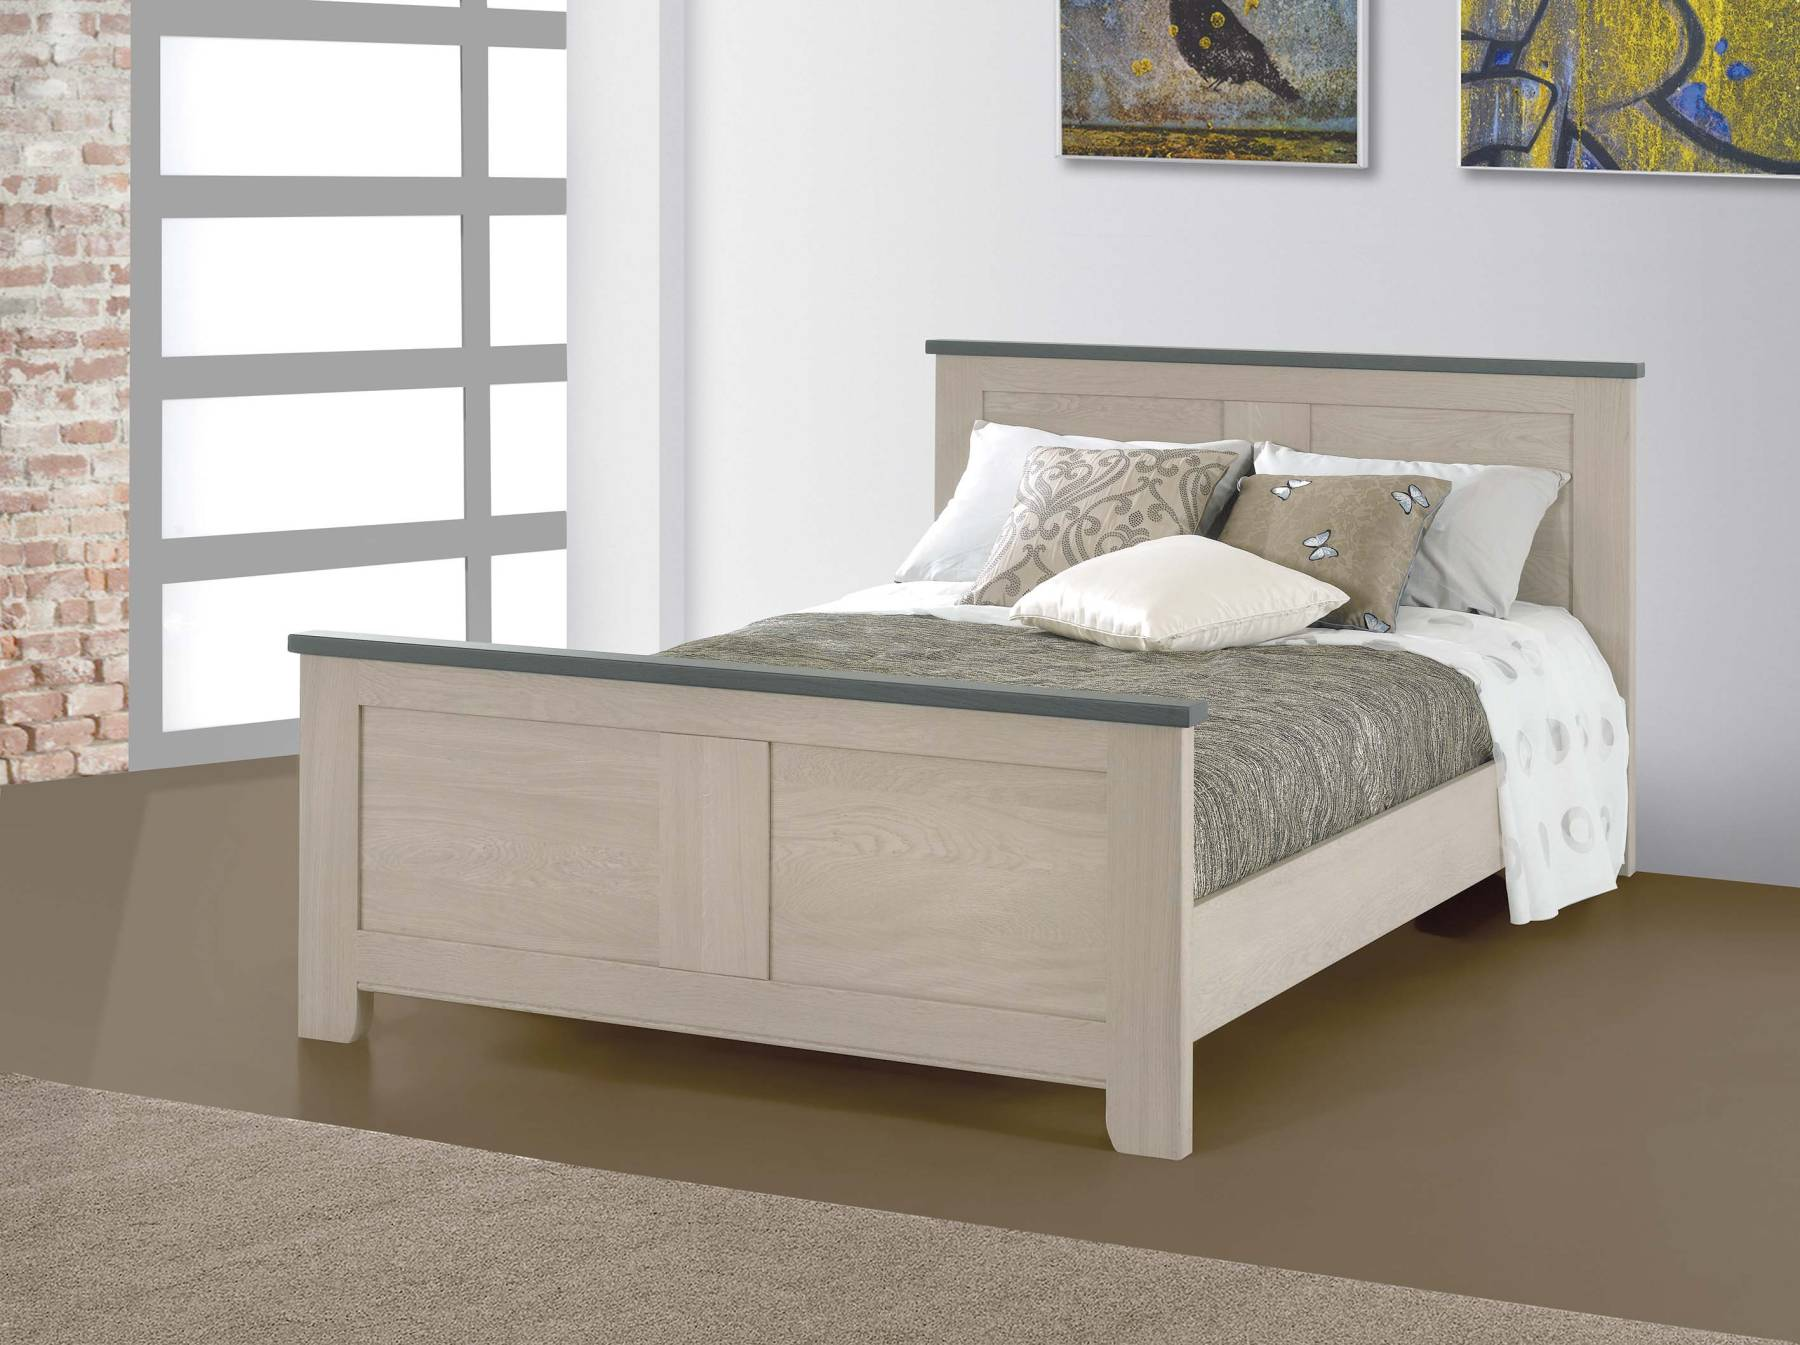 lit contemporain whitney pour 160 x 200 w1620. Black Bedroom Furniture Sets. Home Design Ideas